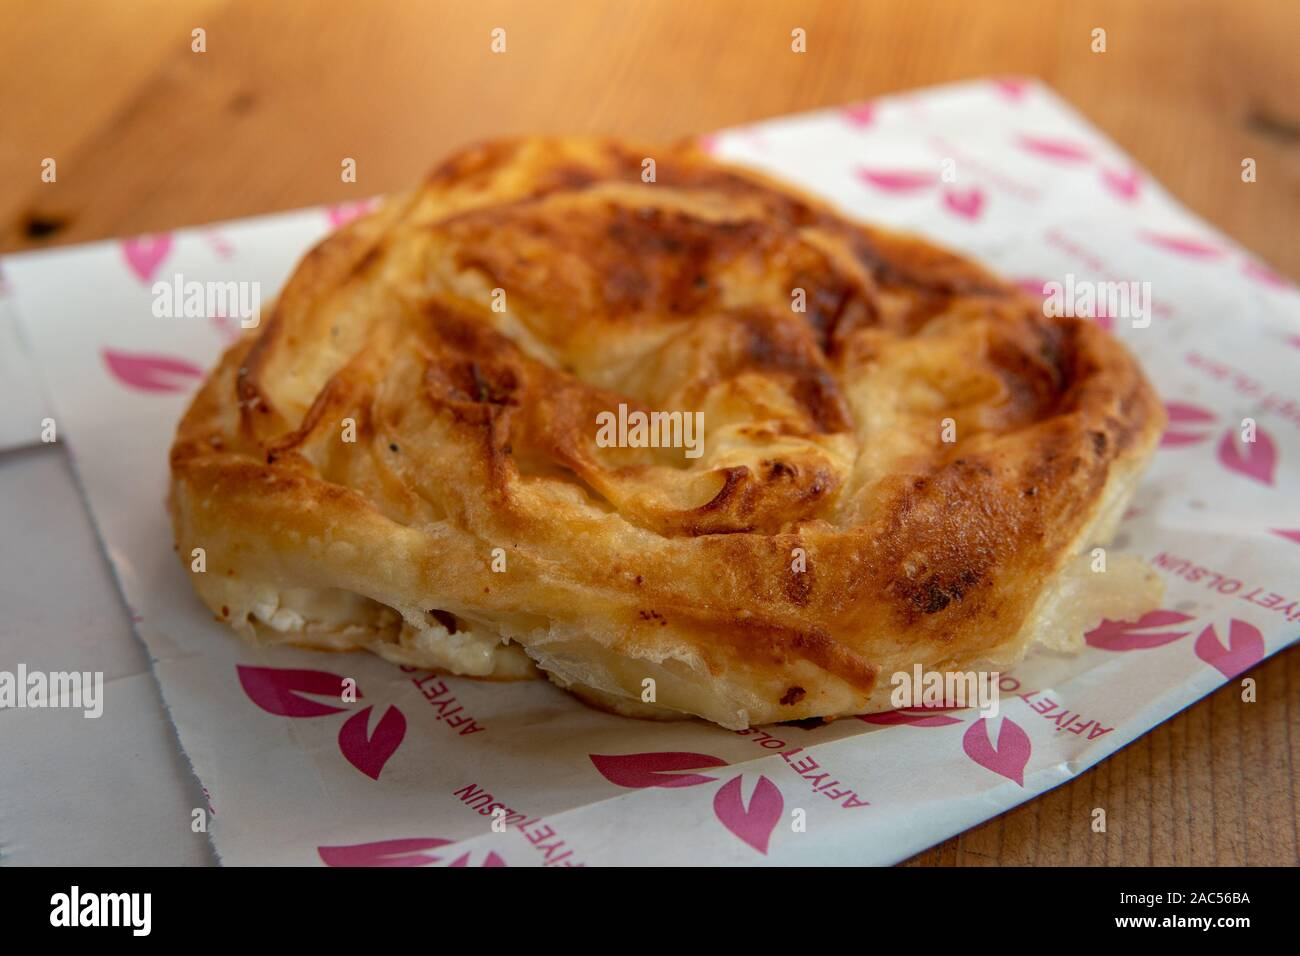 Borek is a family of baked filled pastries made of a thin flaky dough such as phyllo or yufka, of Anatolian origins and also found in the cuisines of Stock Photo